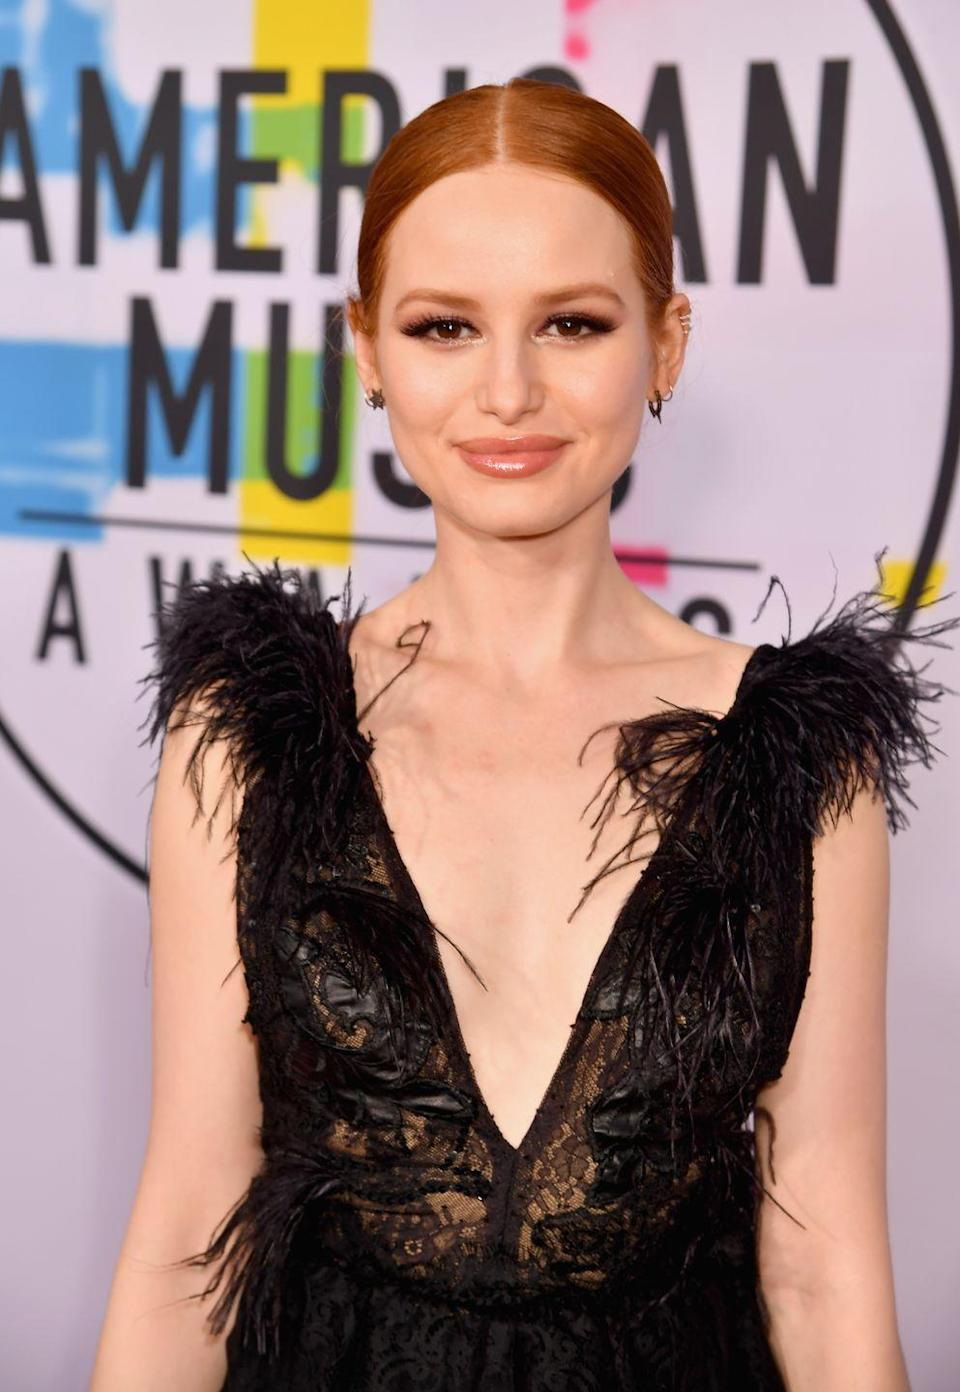 "<p>Before taking on the role of Cheryl Blossom on <em>Riverdale</em>, Madelaine worked <a href=""https://www.cosmopolitan.com/entertainment/celebs/a19831166/madelaine-petsch-career-how-video/"" rel=""nofollow noopener"" target=""_blank"" data-ylk=""slk:three different jobs"" class=""link rapid-noclick-resp"">three different jobs</a>. She opened a coffee shop in the morning, assisted a photographer, and hosted at a Beverly Hills restaurant. On top of all of that, she auditioned for roles.<br></p>"